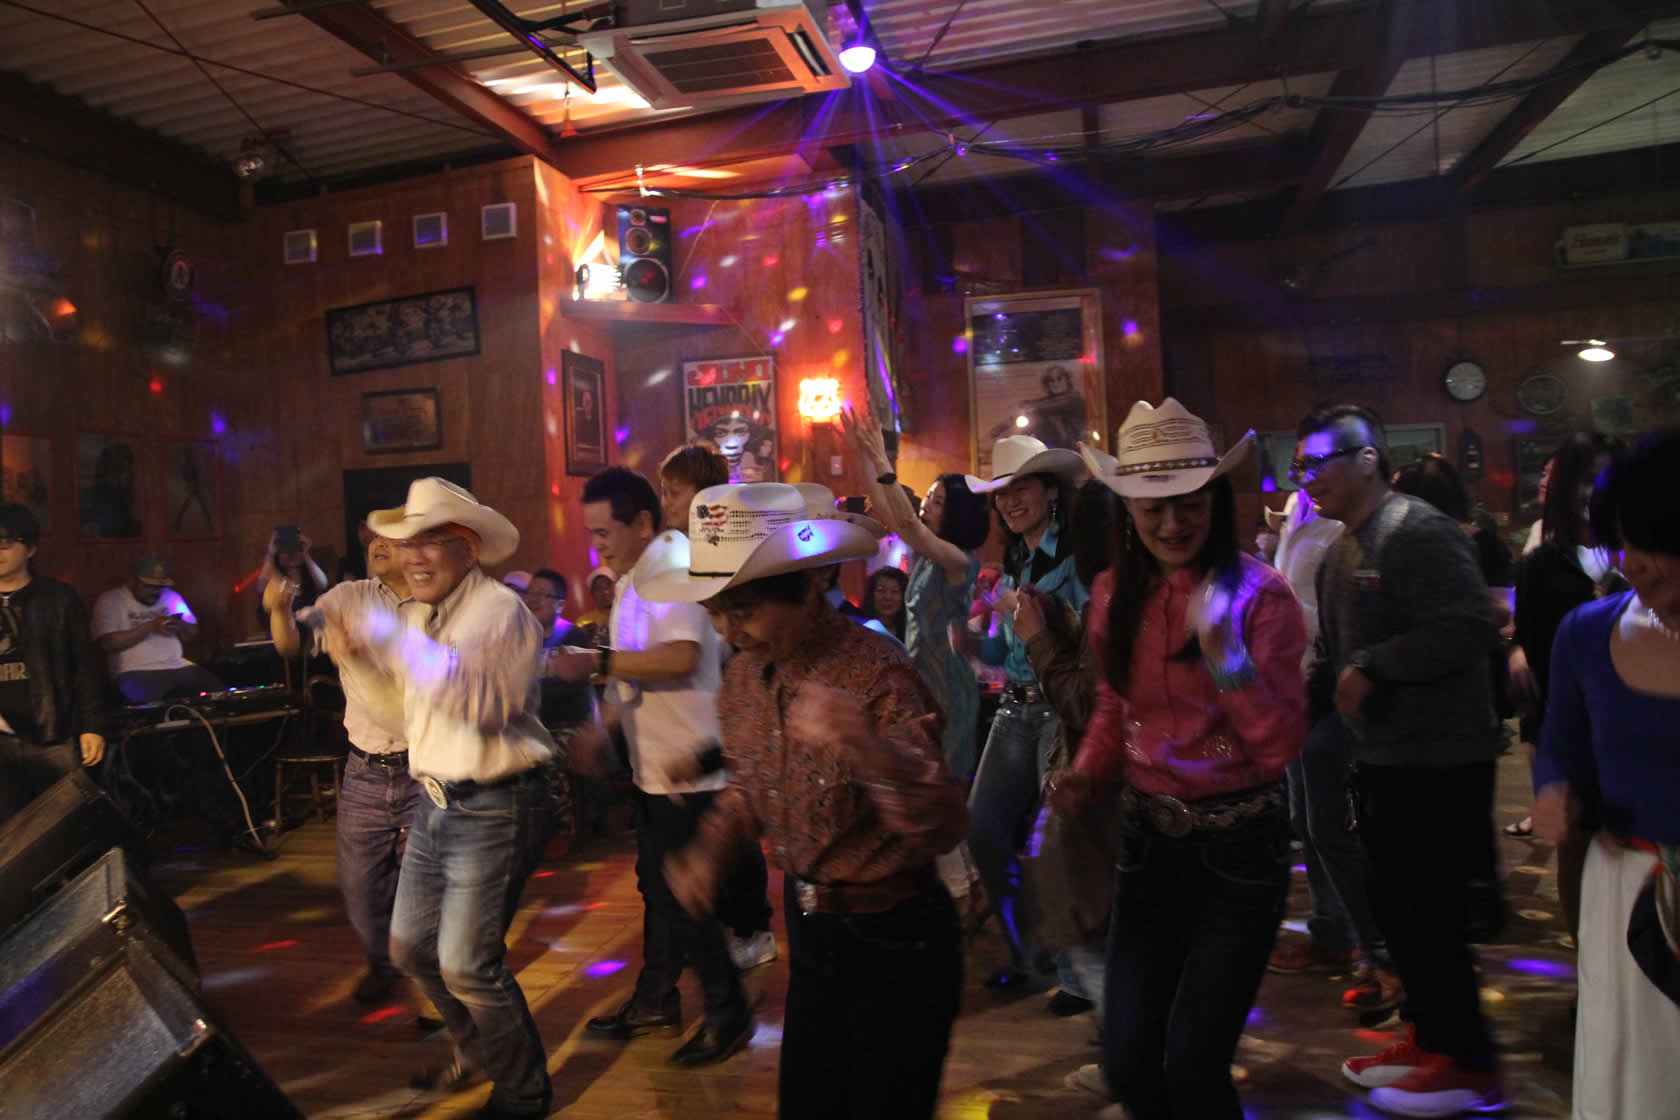 COUNTRY DANCE AT JBHALL